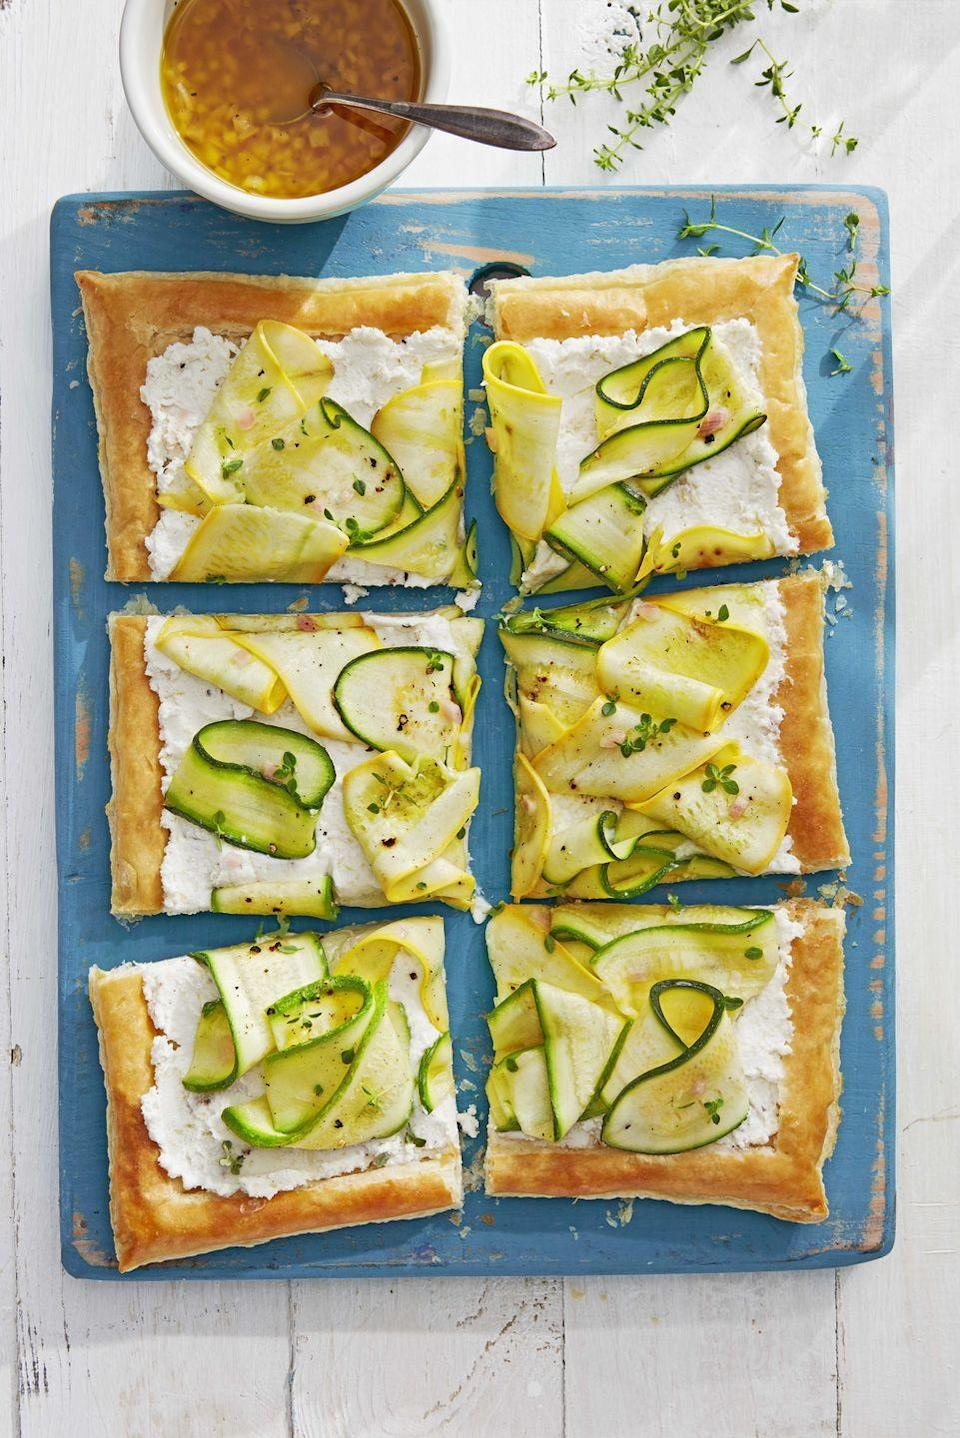 """<p>Thinly sliced and marinated zucchini and summer squash add an elegant twist to this simple summer tart.</p><p><strong><a href=""""https://www.countryliving.com/food-drinks/a28610238/marinated-squash-tart-recipe/"""" rel=""""nofollow noopener"""" target=""""_blank"""" data-ylk=""""slk:Get the recipe"""" class=""""link rapid-noclick-resp"""">Get the recipe</a>.</strong></p>"""